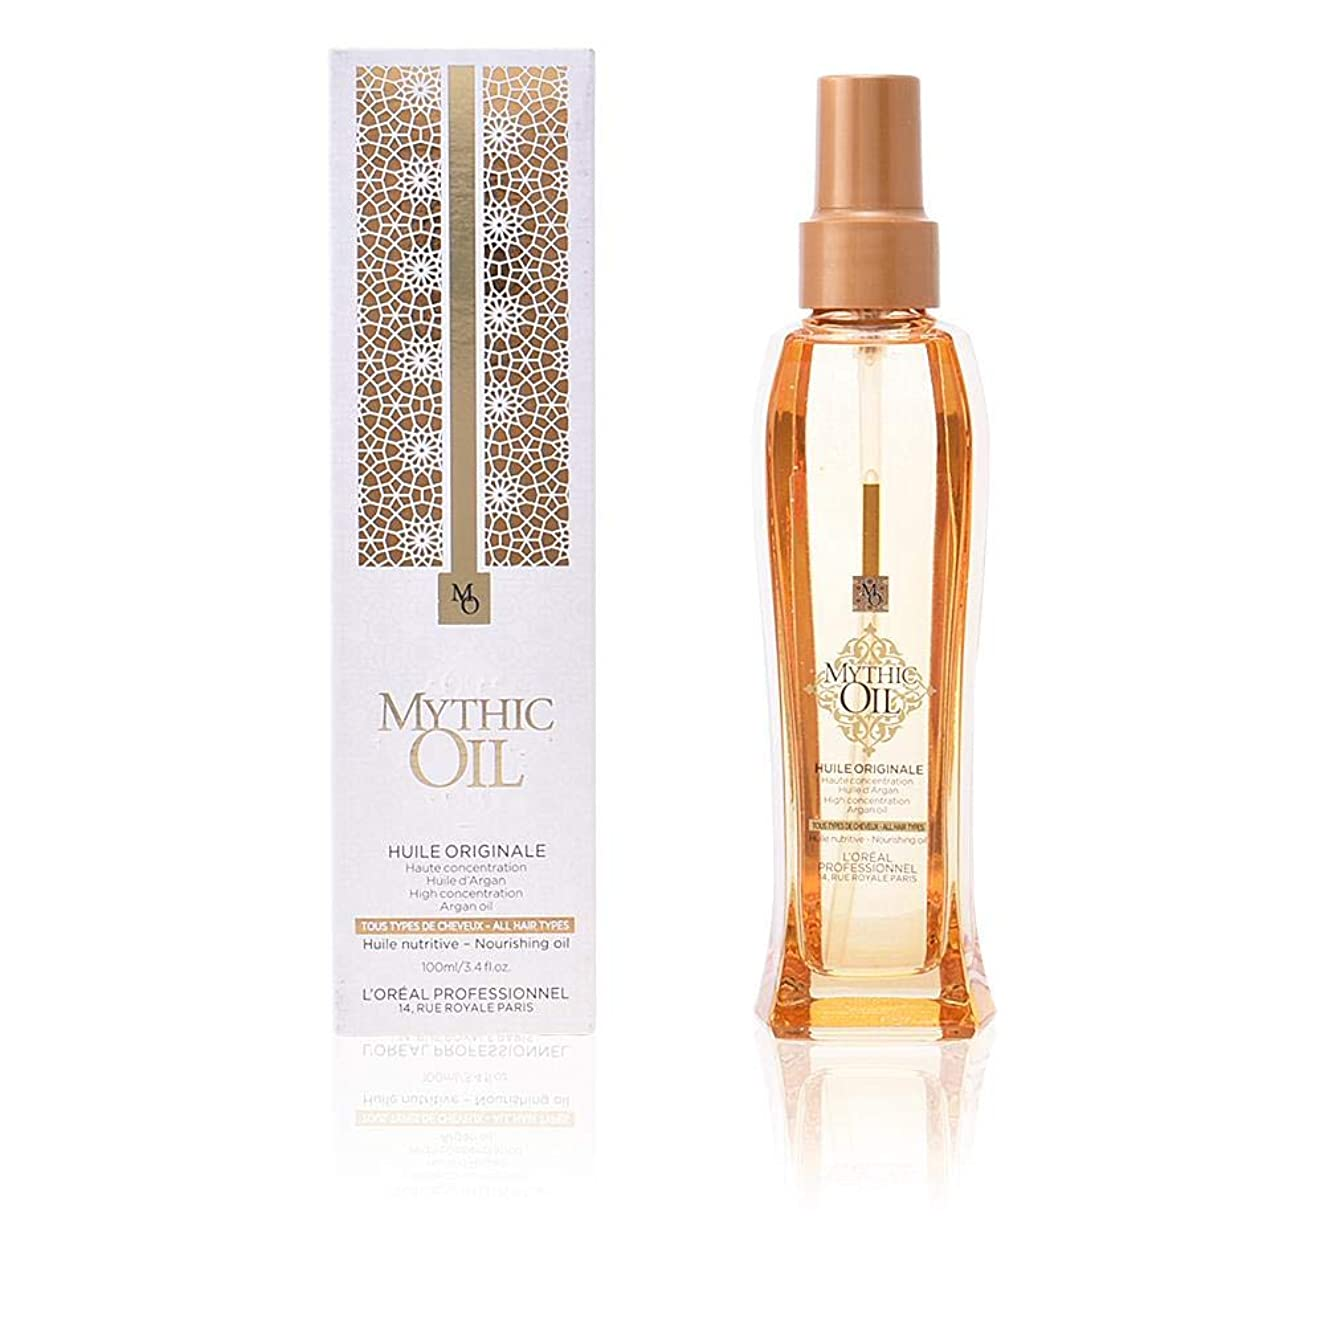 パイプラインドラム強大なロレアル Professionnel Mythic Oil Nourishing Oil (For All Hair Types) 100ml/3.4oz